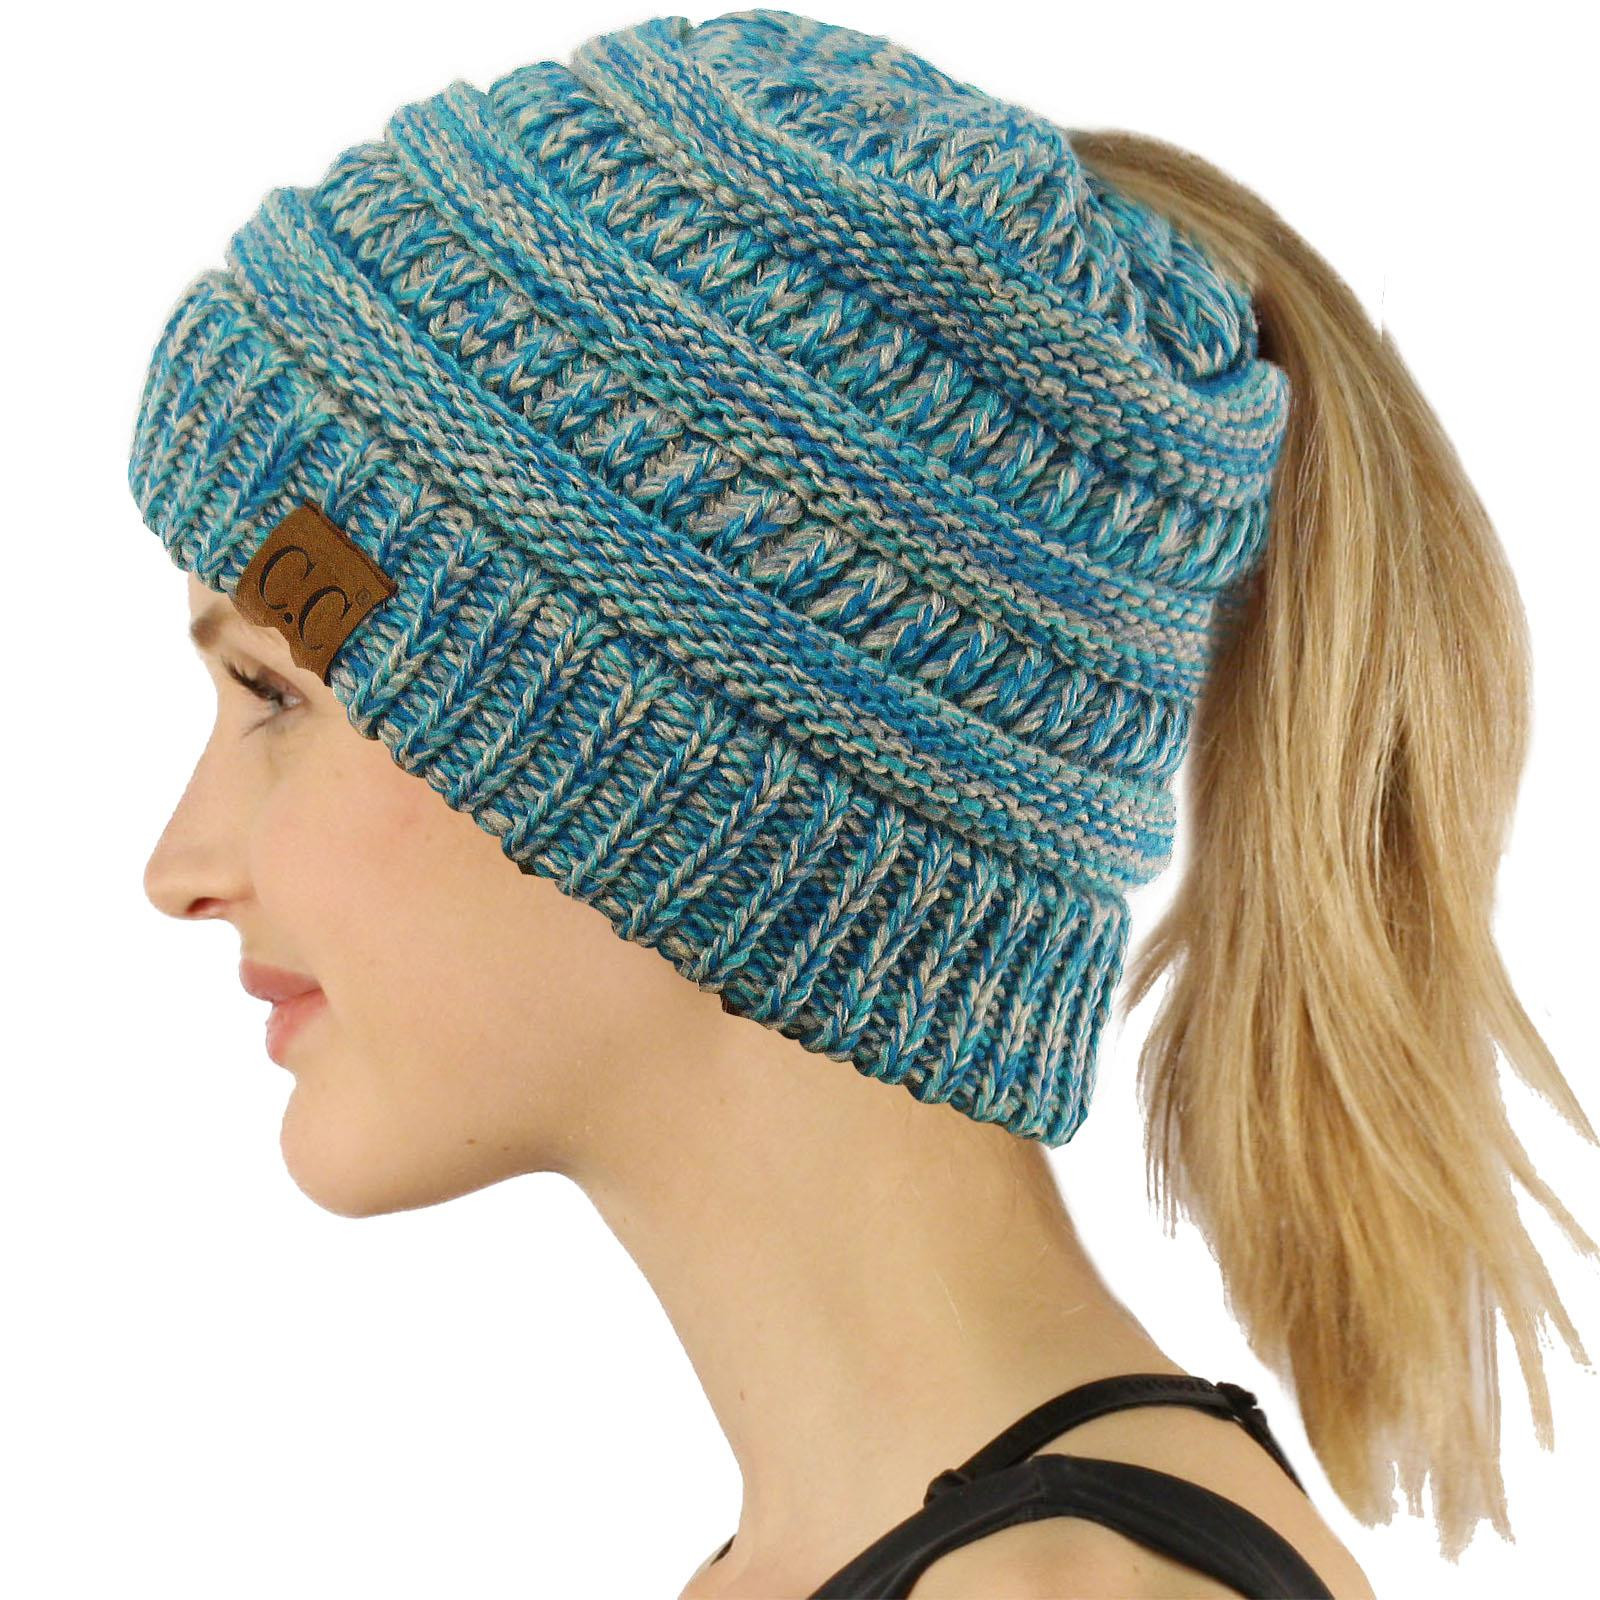 Ponytail Beanie Hat Inspirational Cc Beanietail Messy High Bun Ponytail Stretchy Knit Beanie Of Amazing 48 Pictures Ponytail Beanie Hat